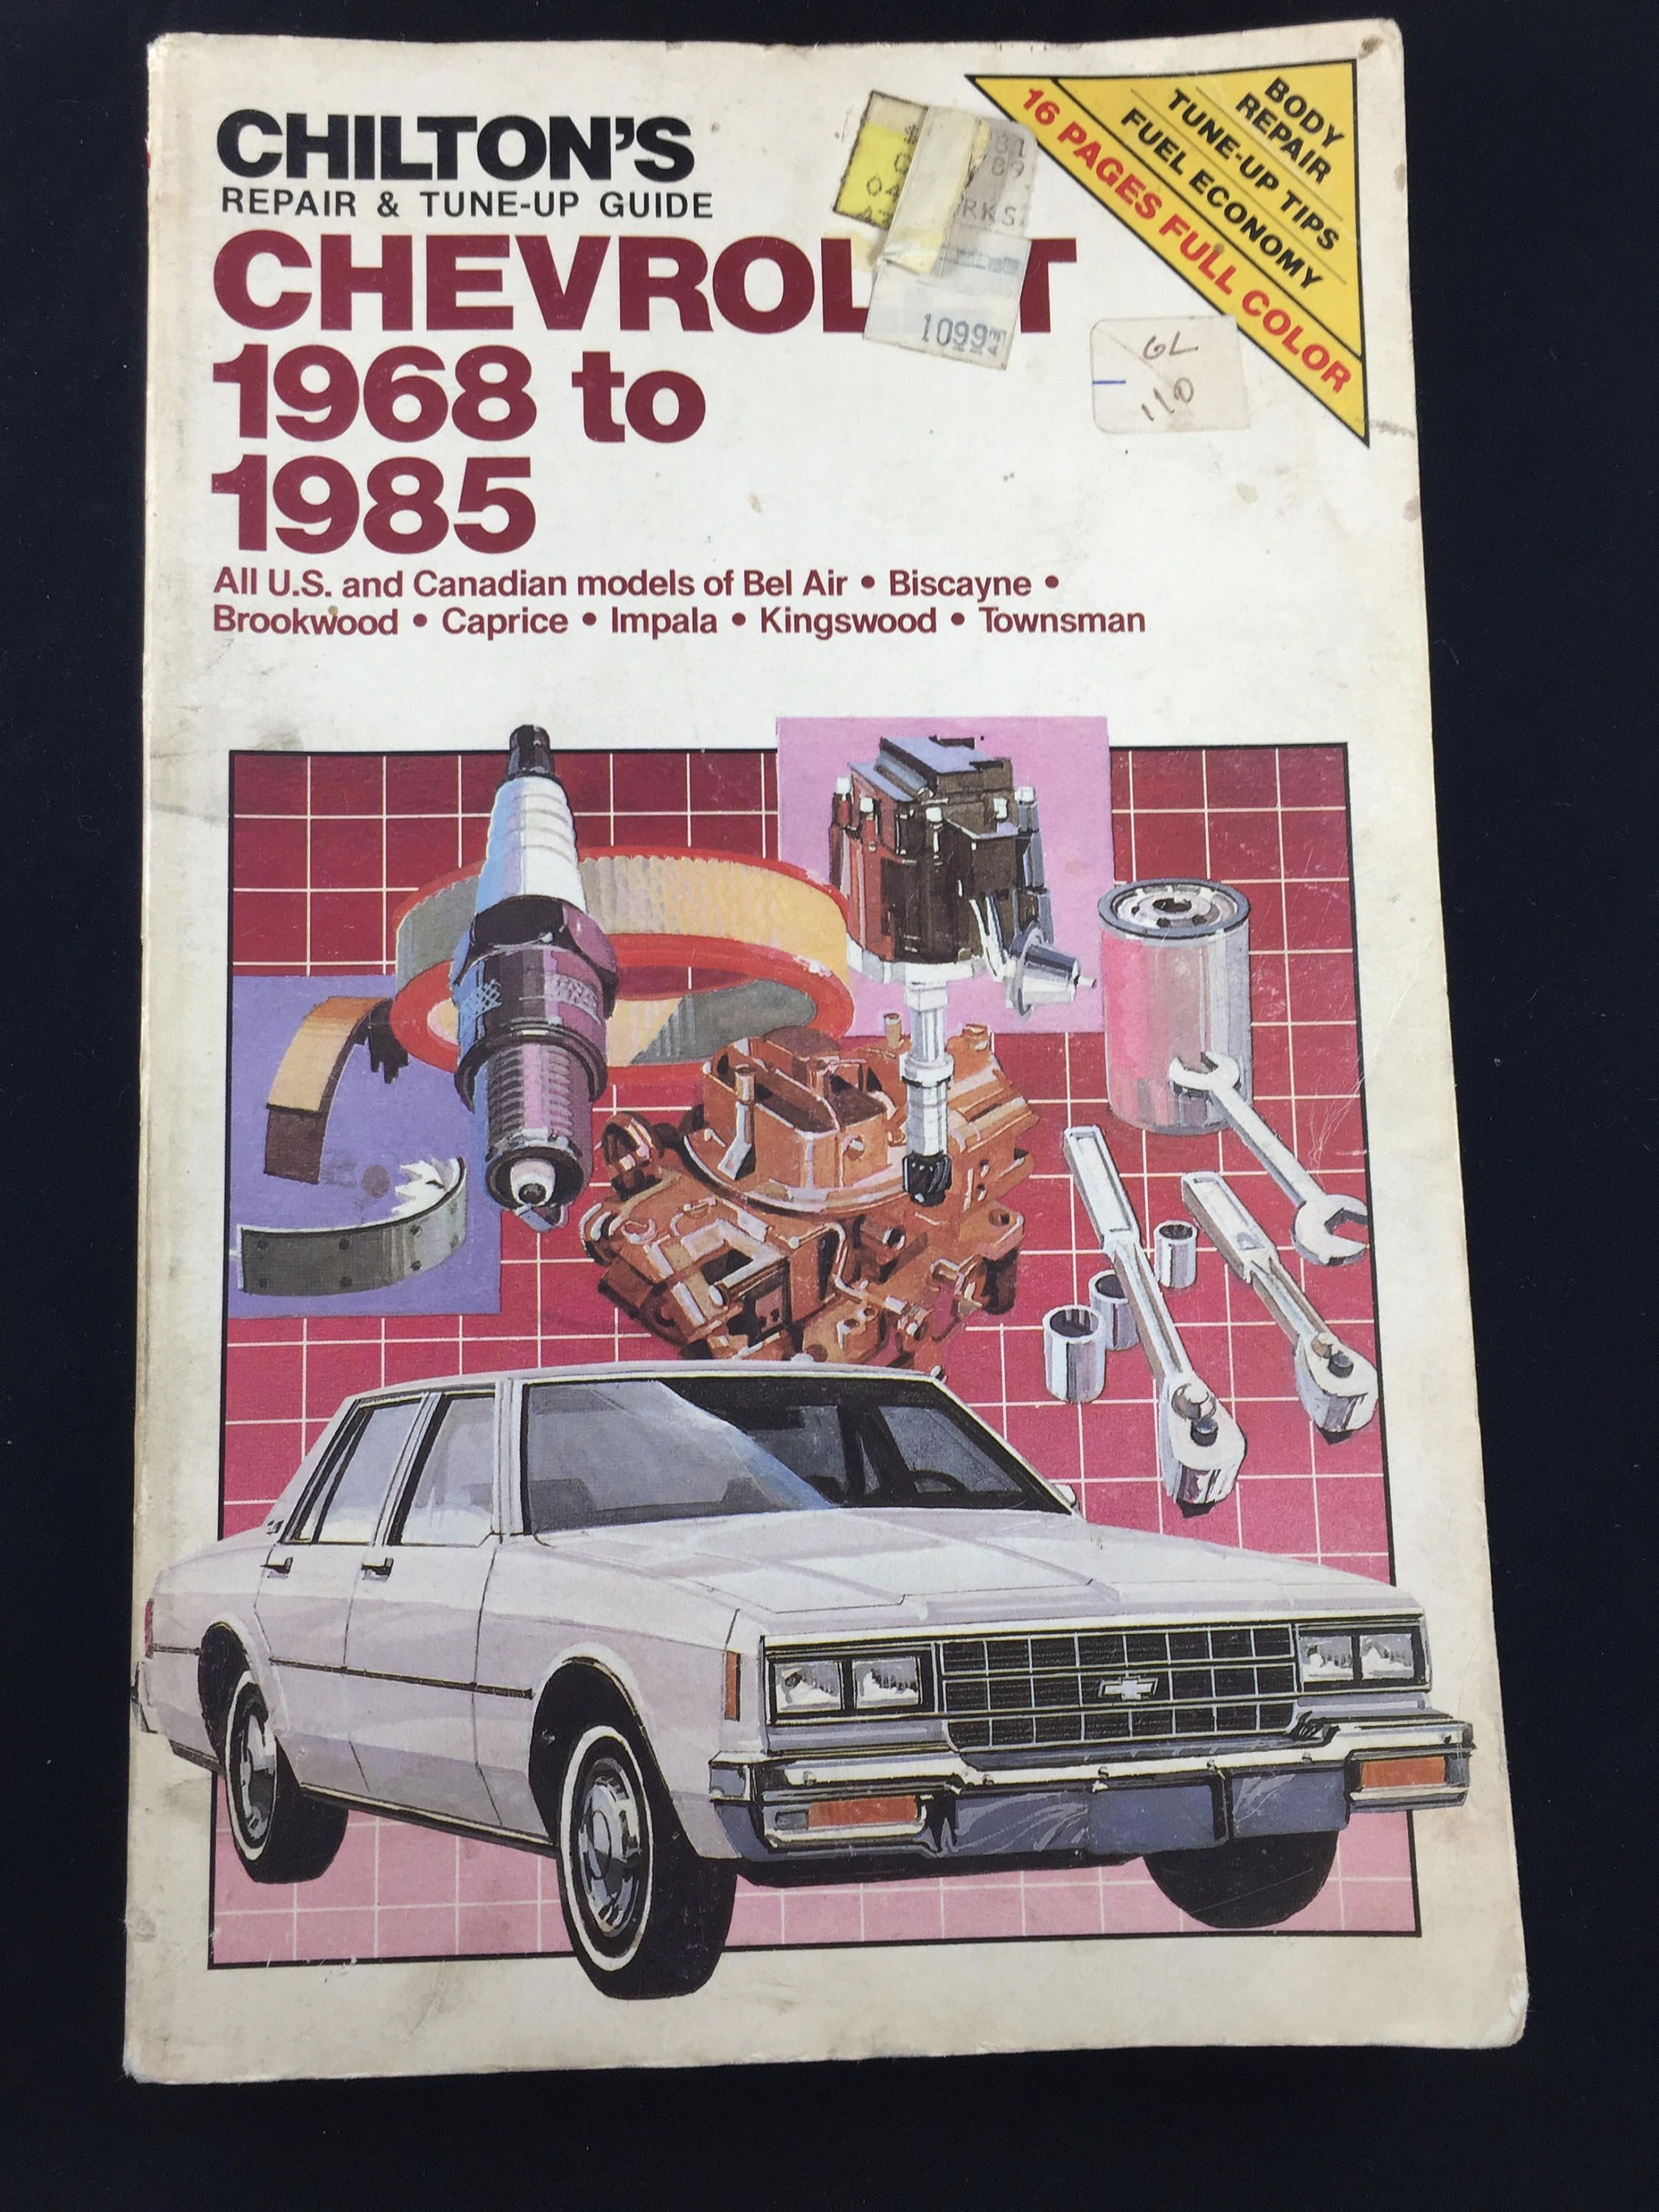 Chilton's Auto Repair Manual Chevrolet 19681985 US and